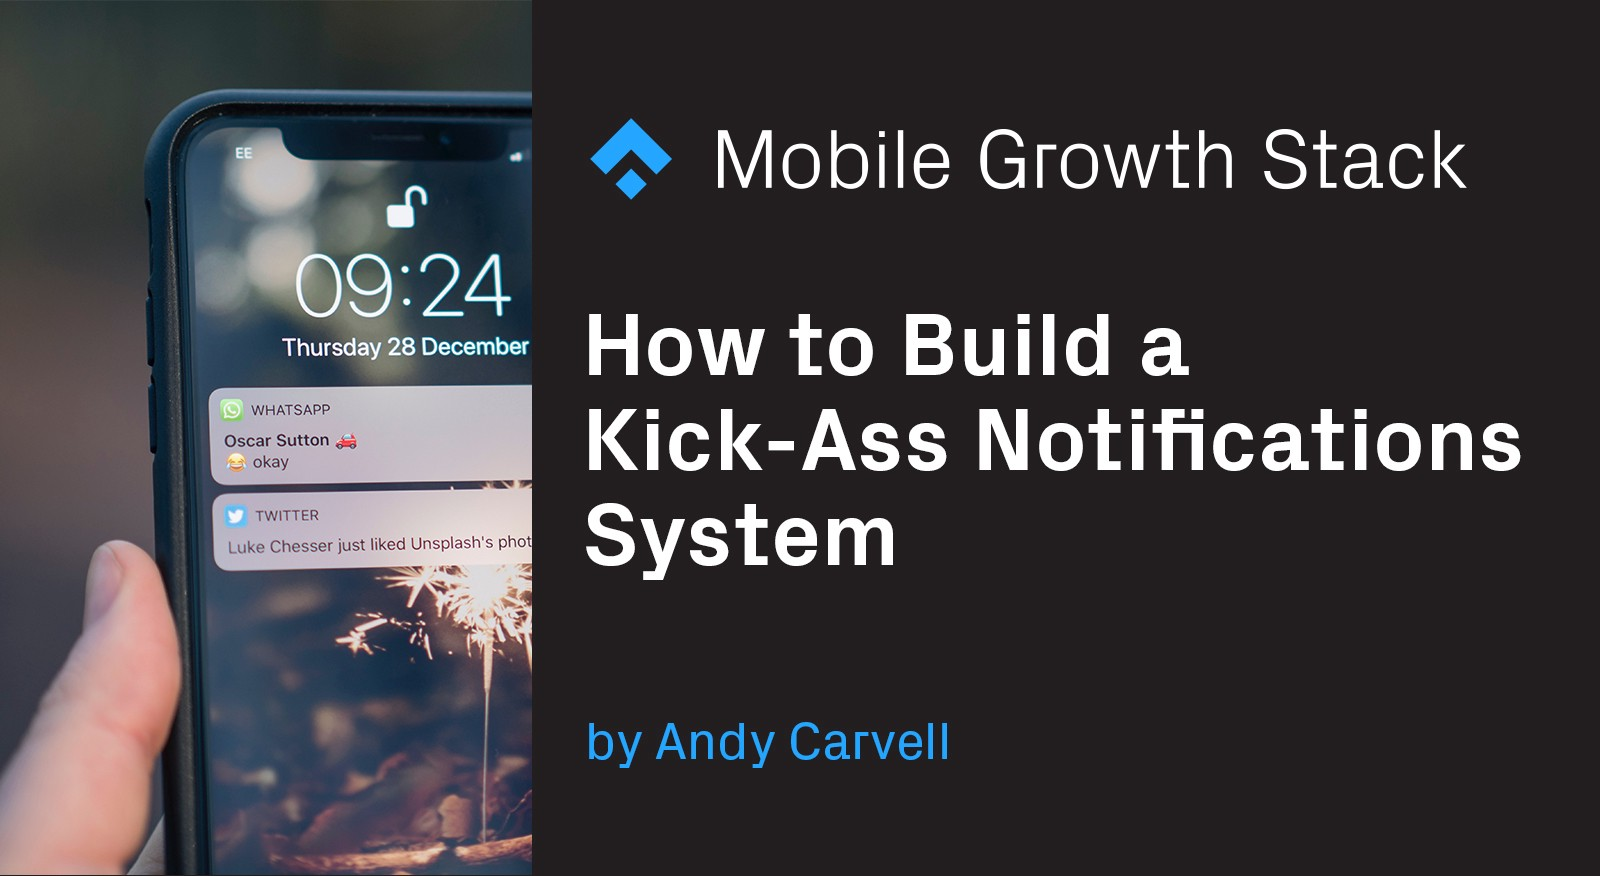 How to Build a Kick-Ass Notifications System - The Mobile